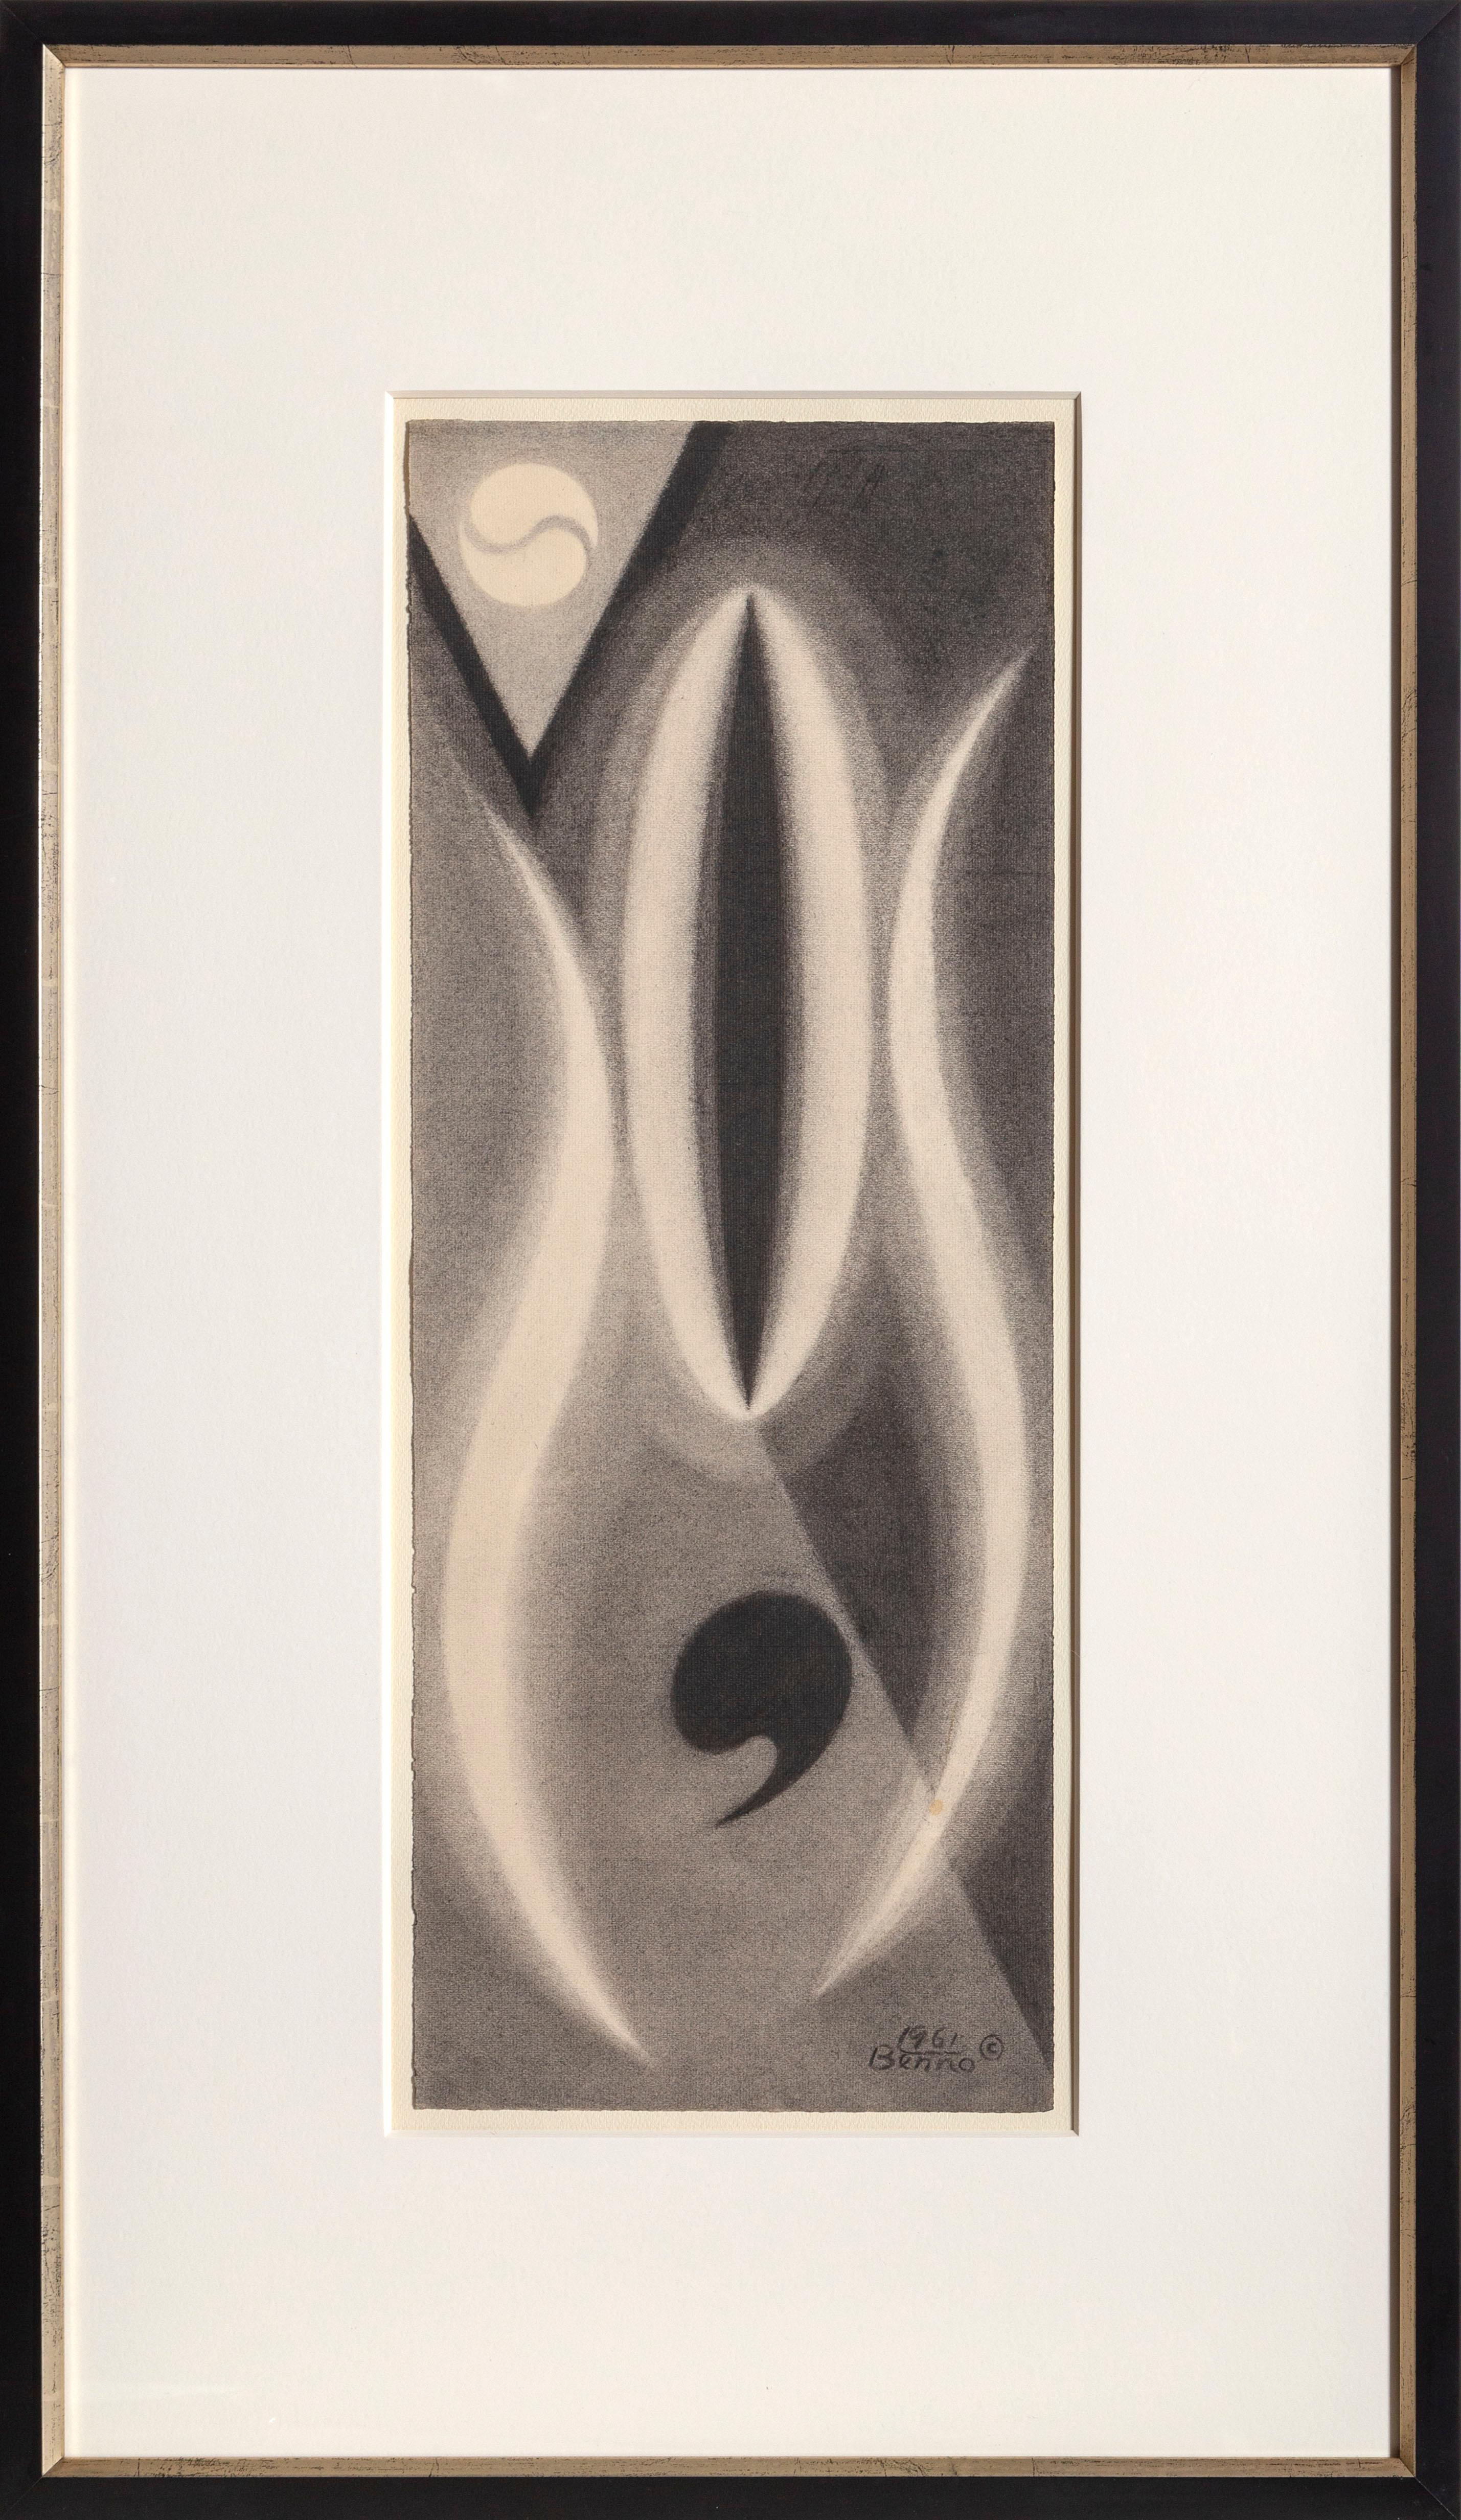 The Life of a Comma, Modern Abstract Still-Life Drawing by Benjamin Benno 1961